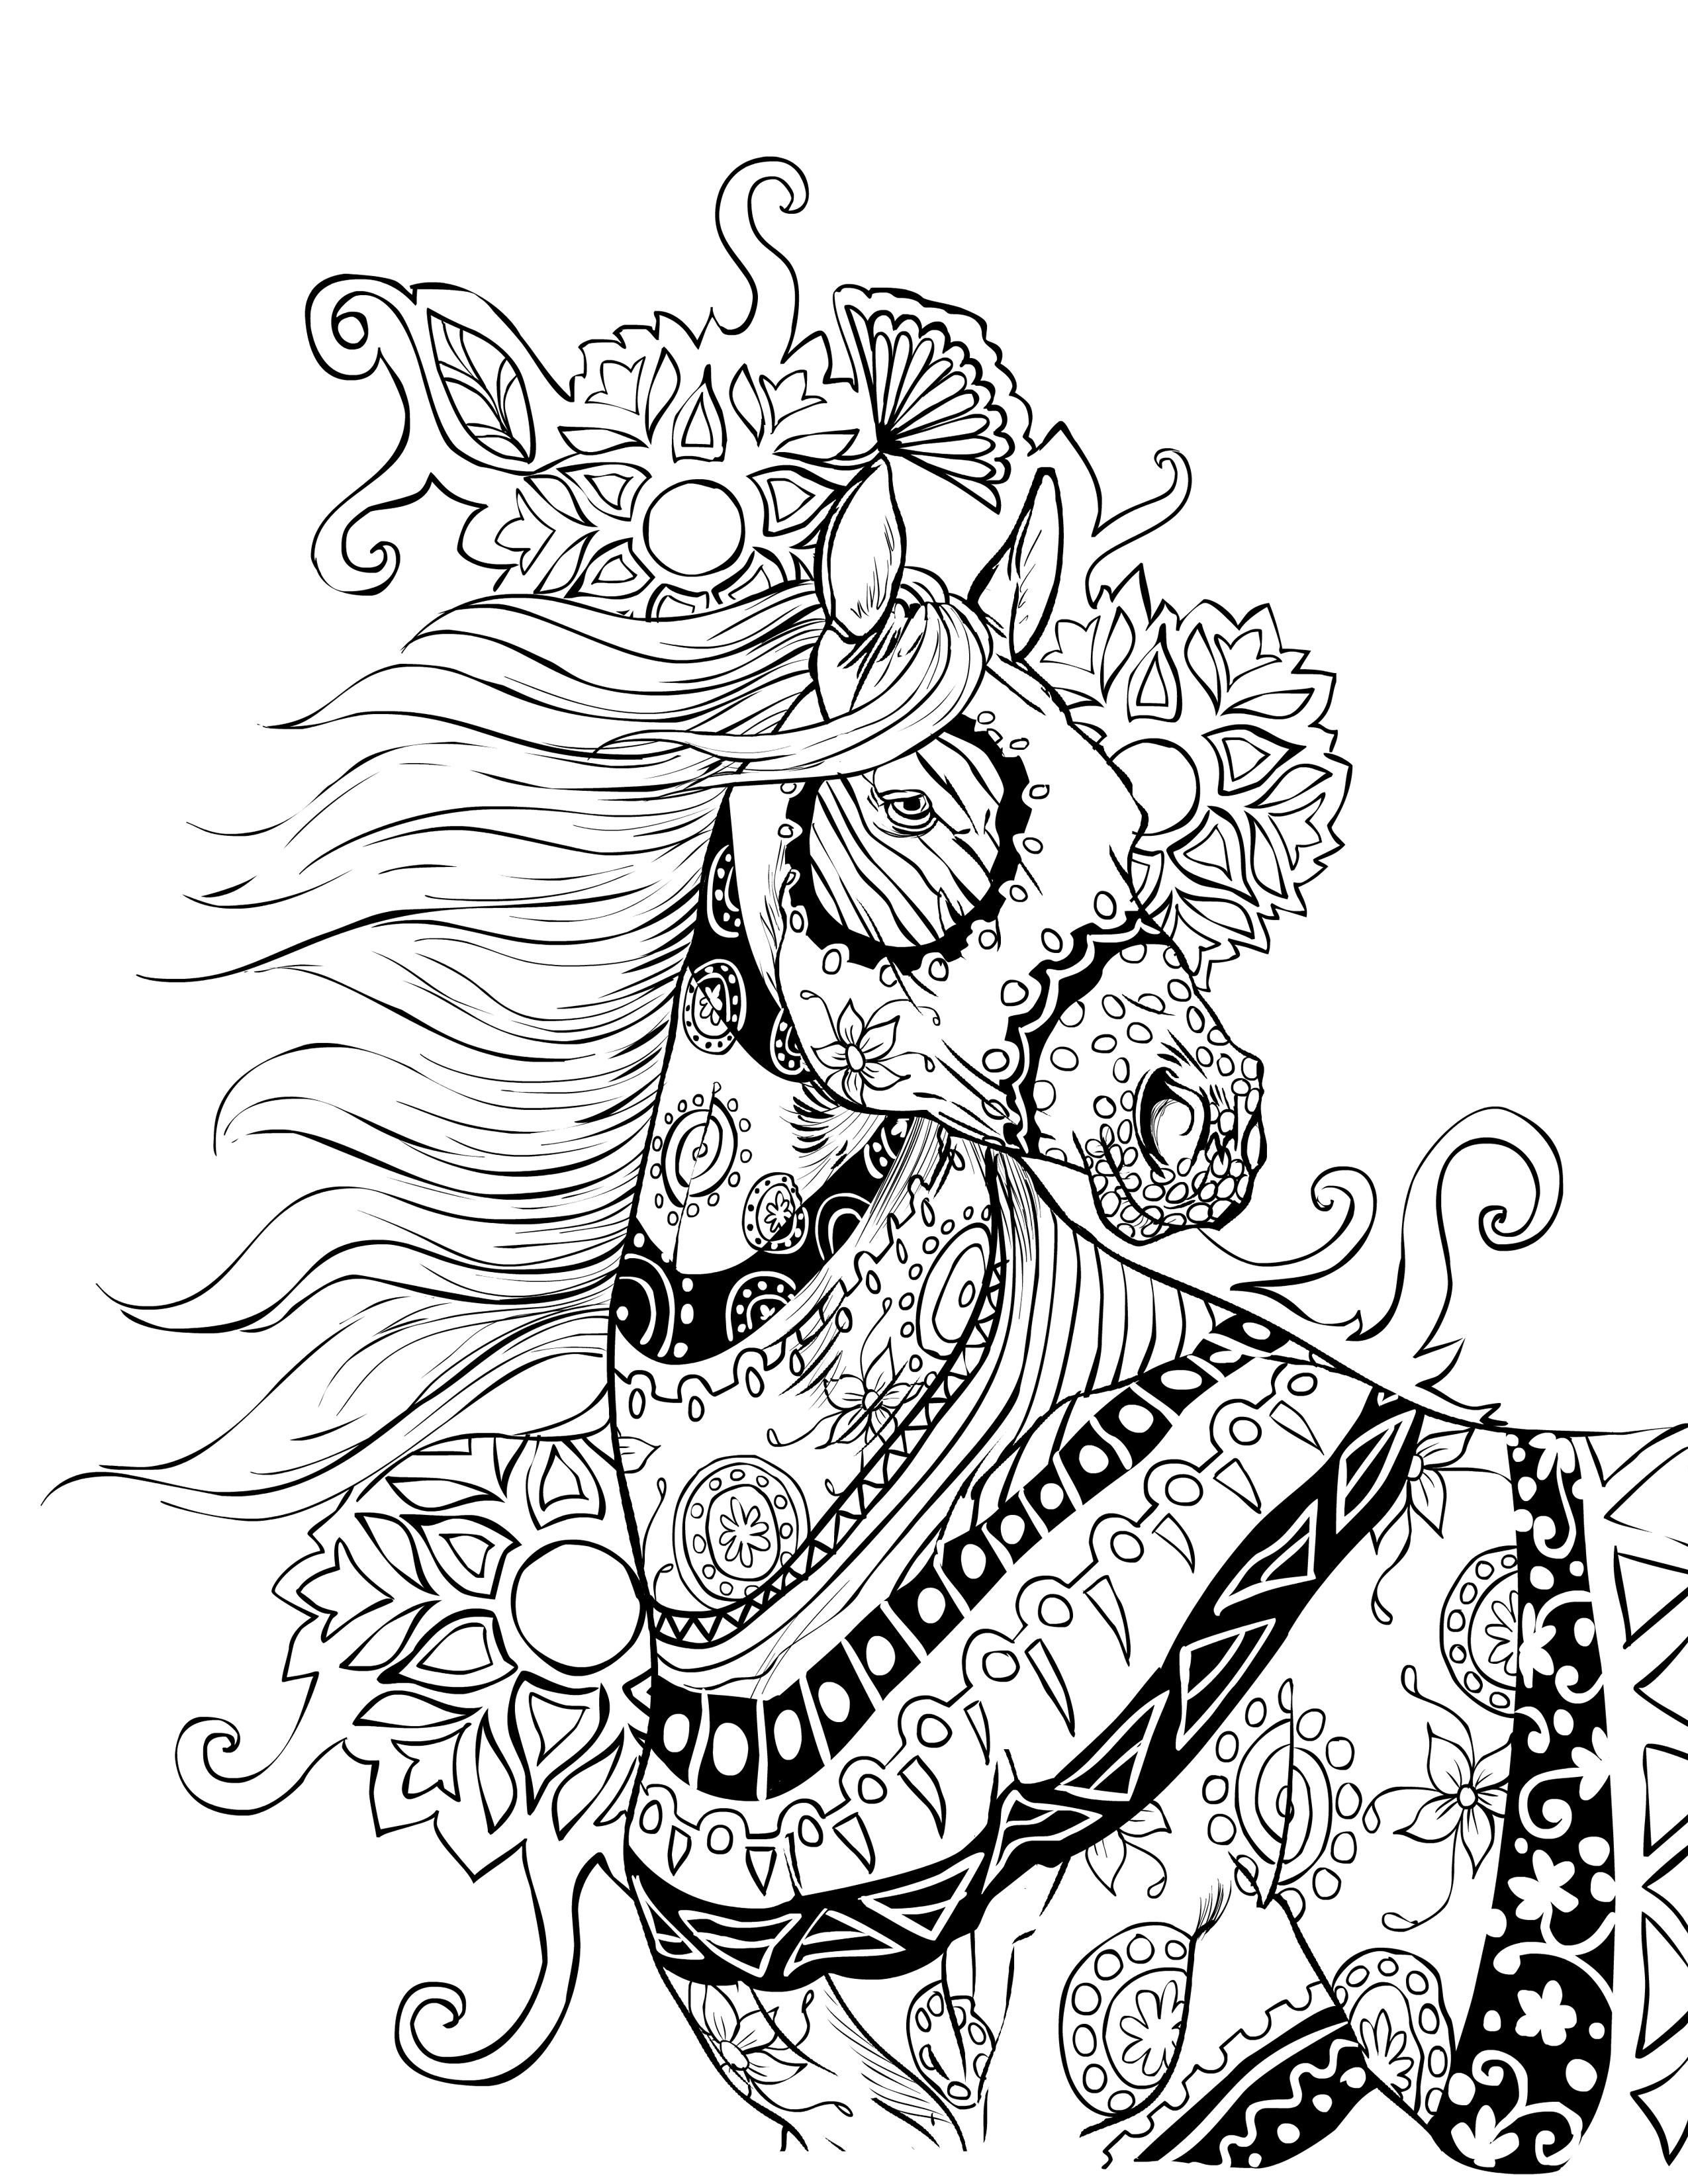 detailed horse coloring pages horse adult coloring page gift wall art mandala zentangle horse detailed pages coloring